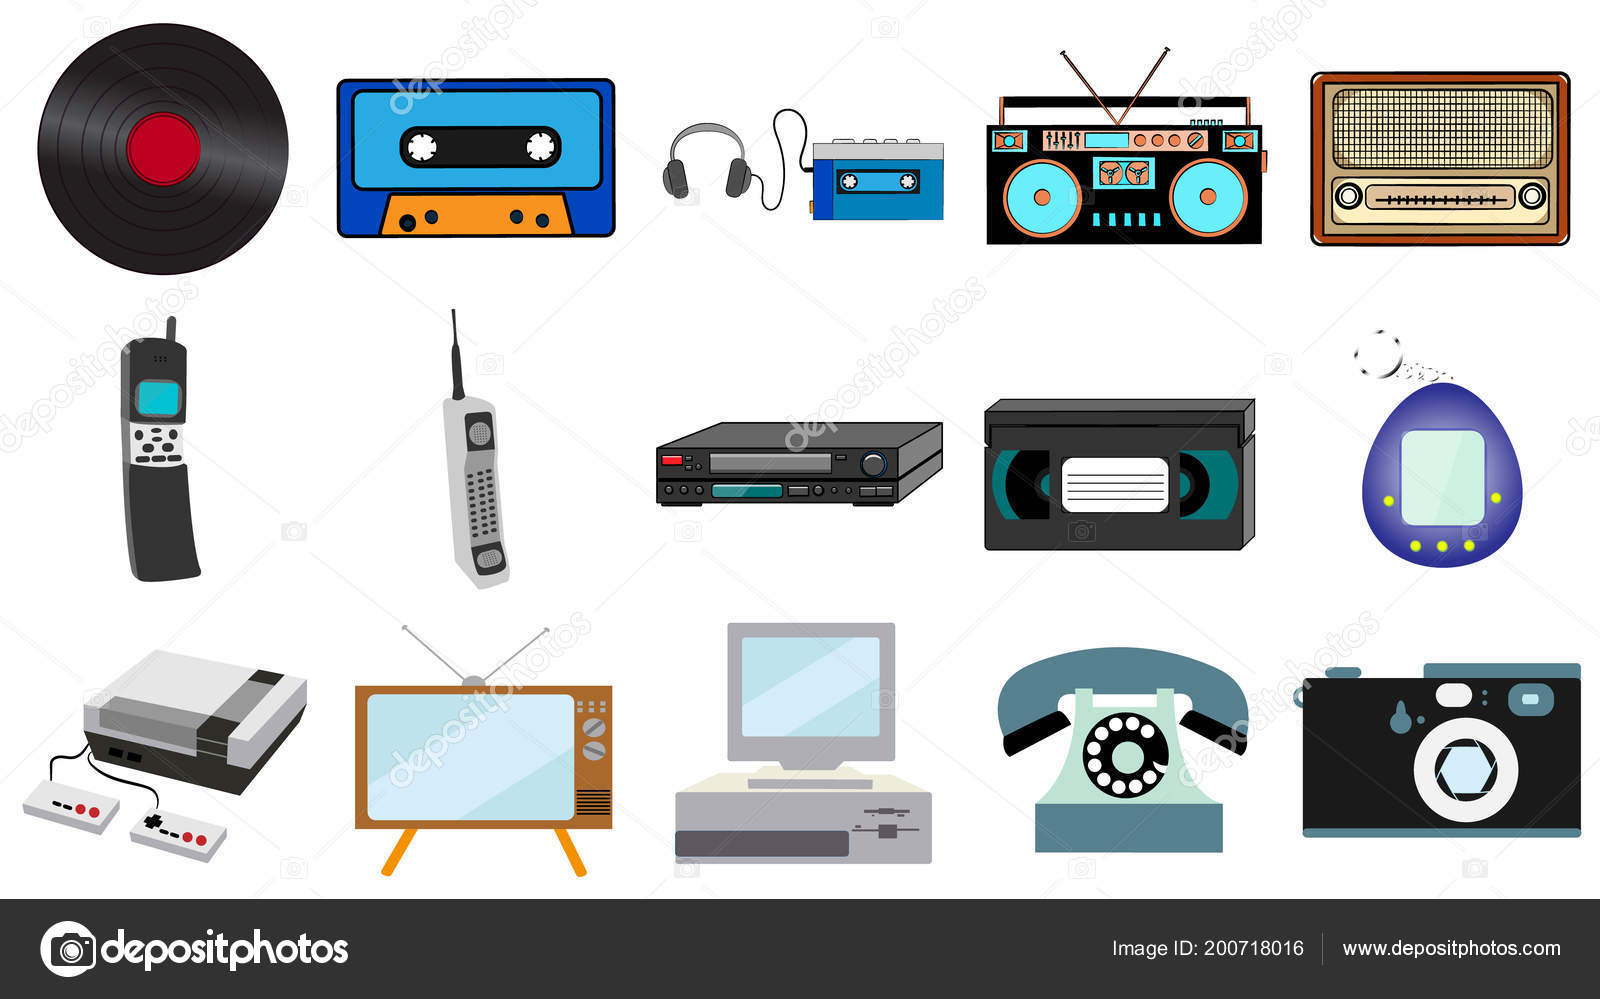 Musica Hipster Electronica Conjunto Tecnologia Hipster Vintage